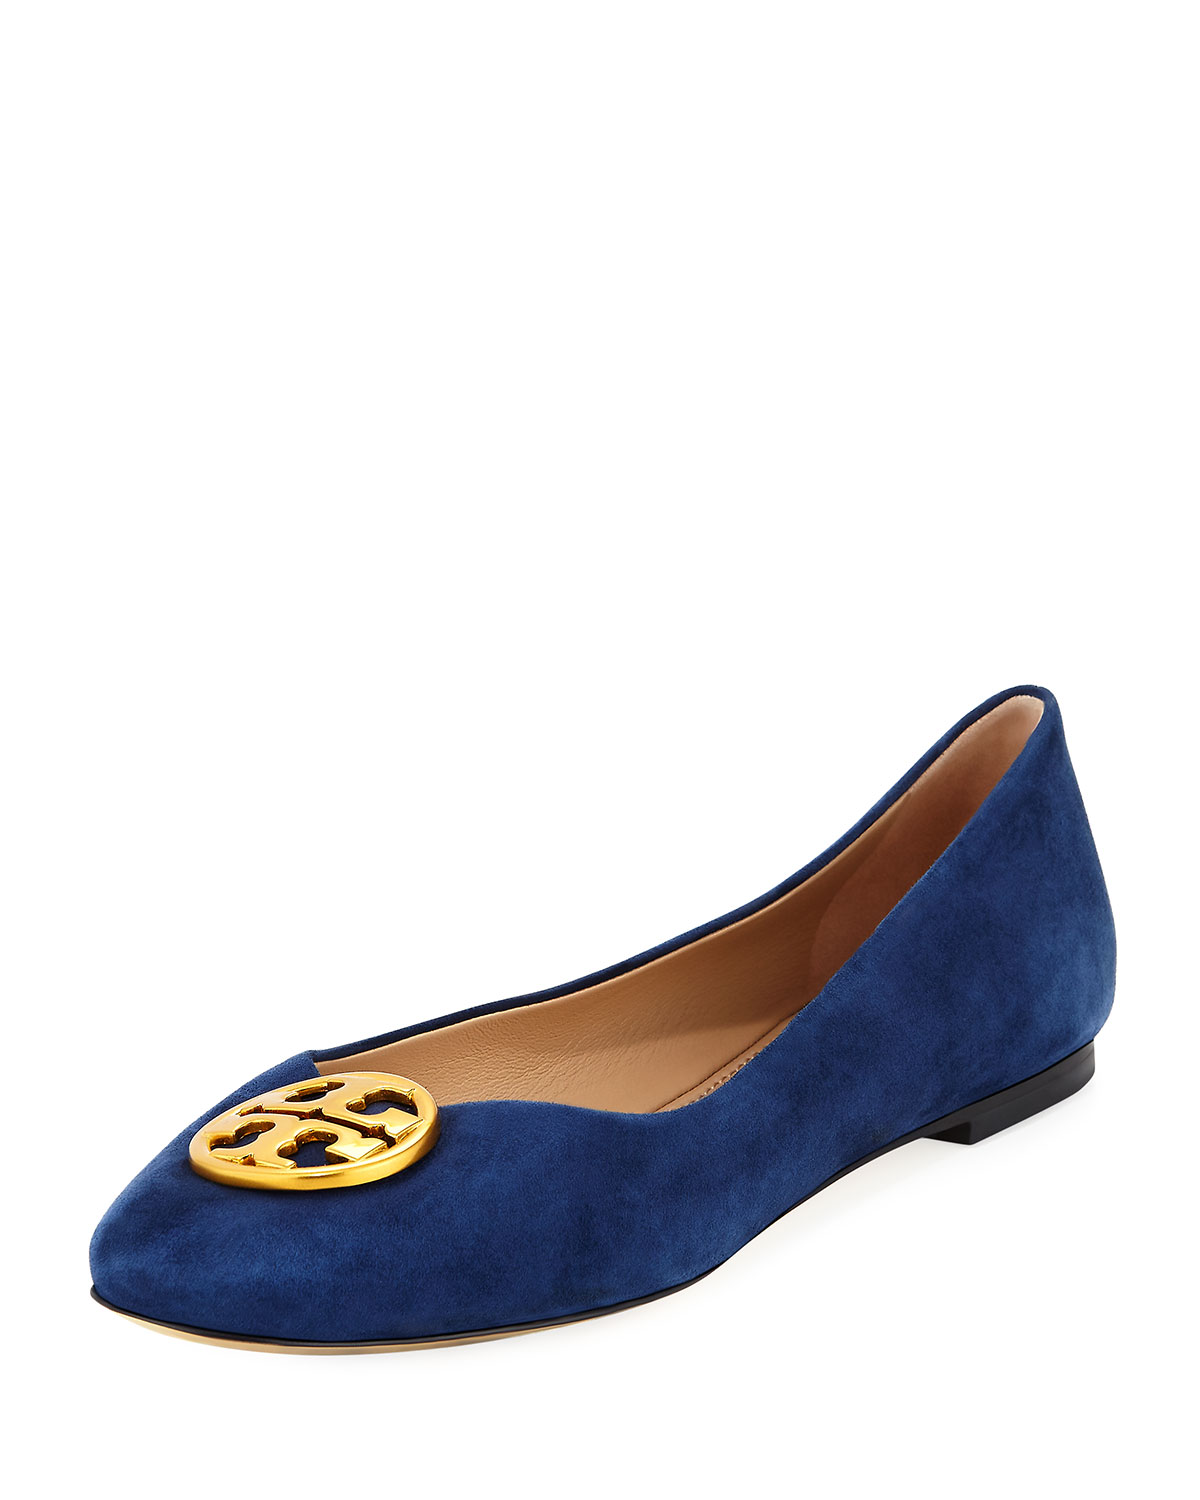 83699b5bc651 Tory Burch Chelsea Suede Ballet Flat